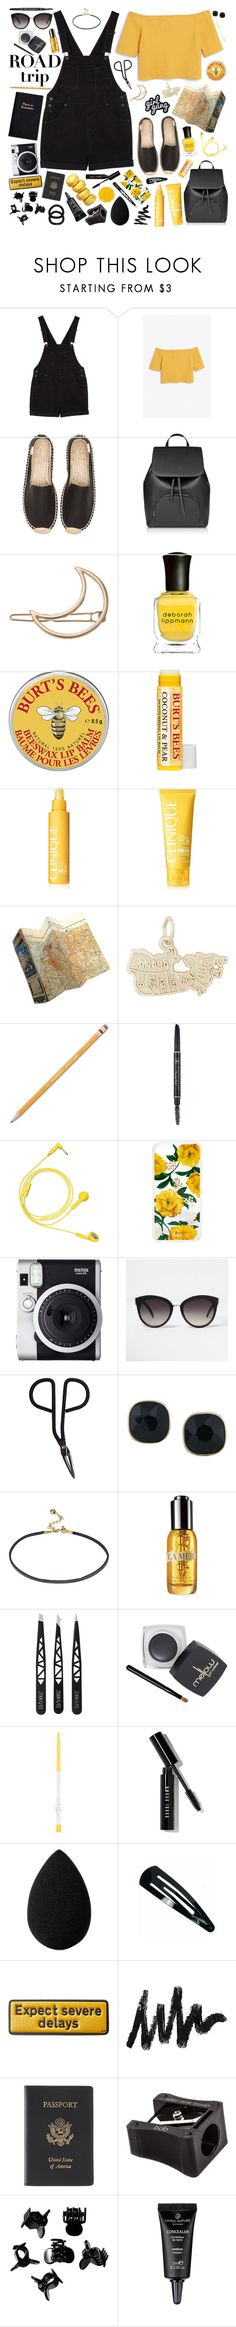 """road trippin' [#540]"" by hello-crazy ❤ liked on Polyvore featuring Monki, Soludos, LC Lauren Conrad, Deborah Lippmann, Clinique, Rembrandt Charms, Leathersmith, Paper Mate, Happy Plugs and Sonix"